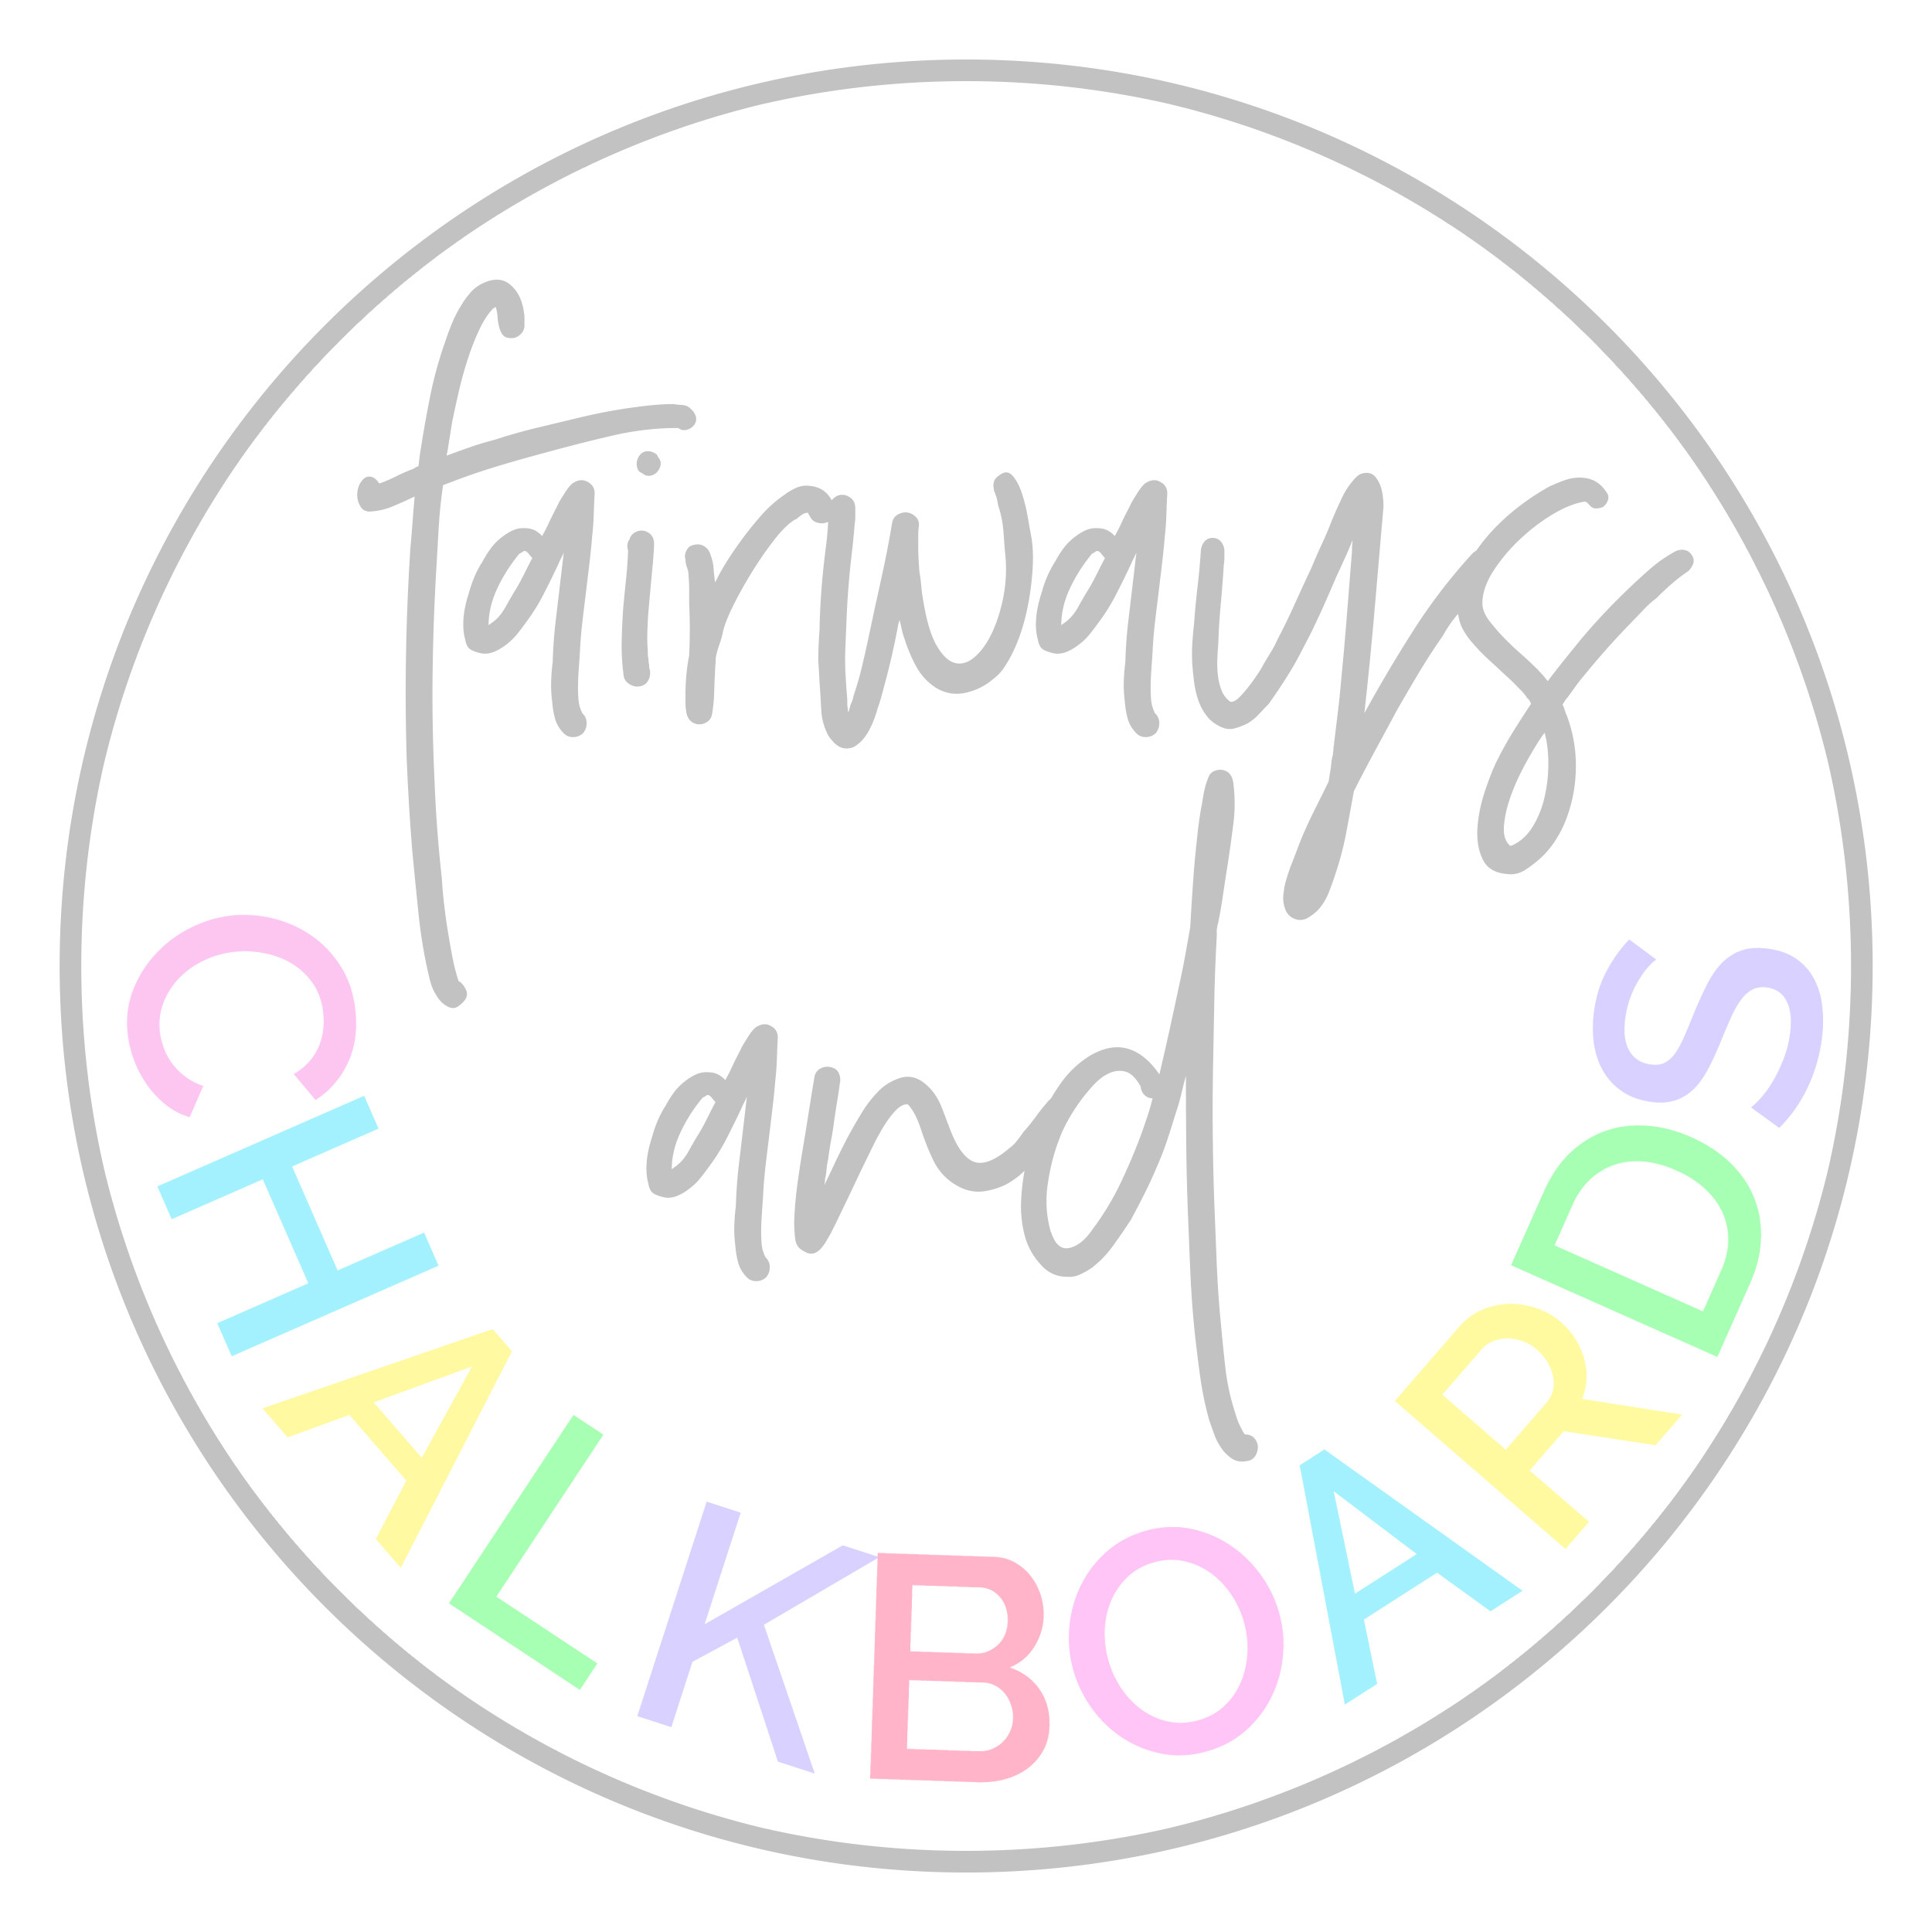 Fairways And Chalkboards's profile picture